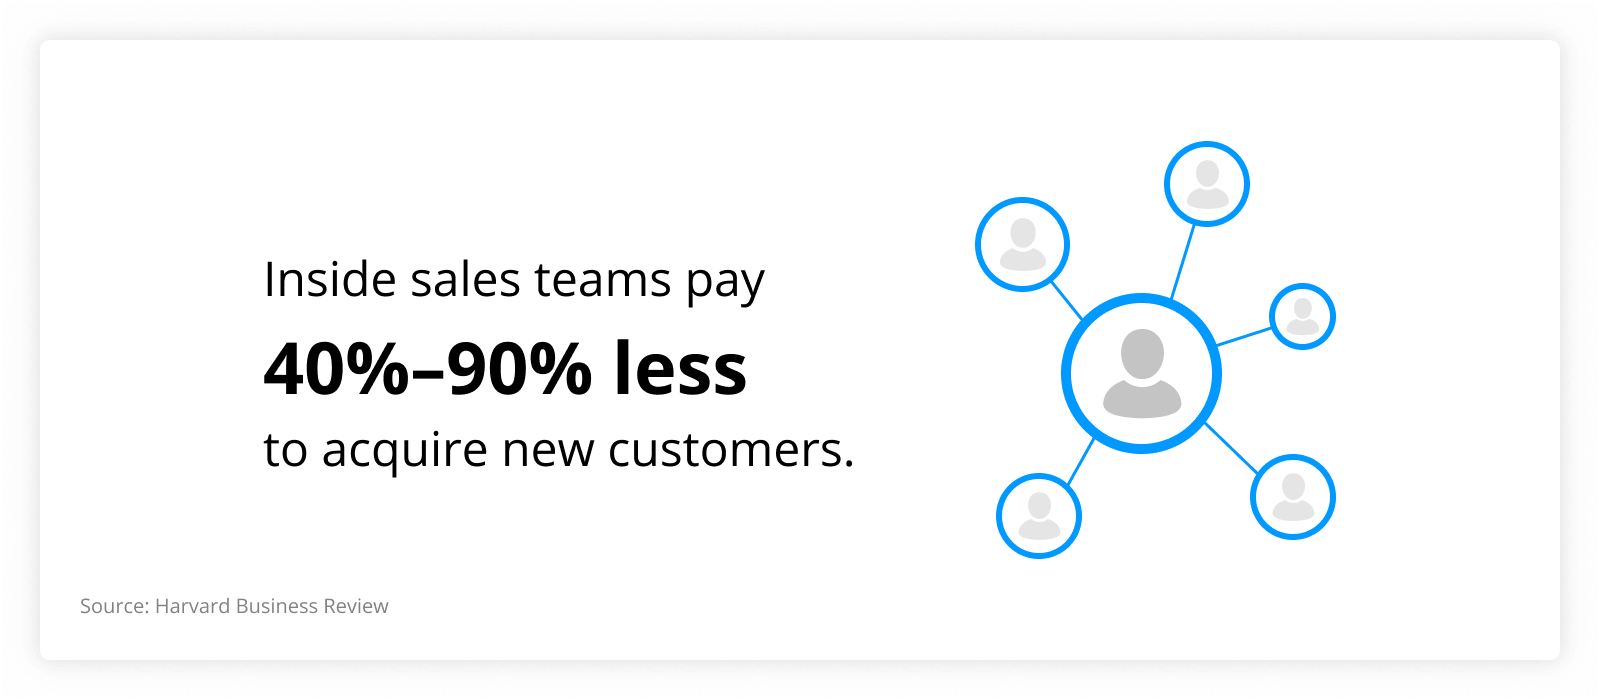 graph showing that nside sales teams pay 40%–90% less to acquire new customers